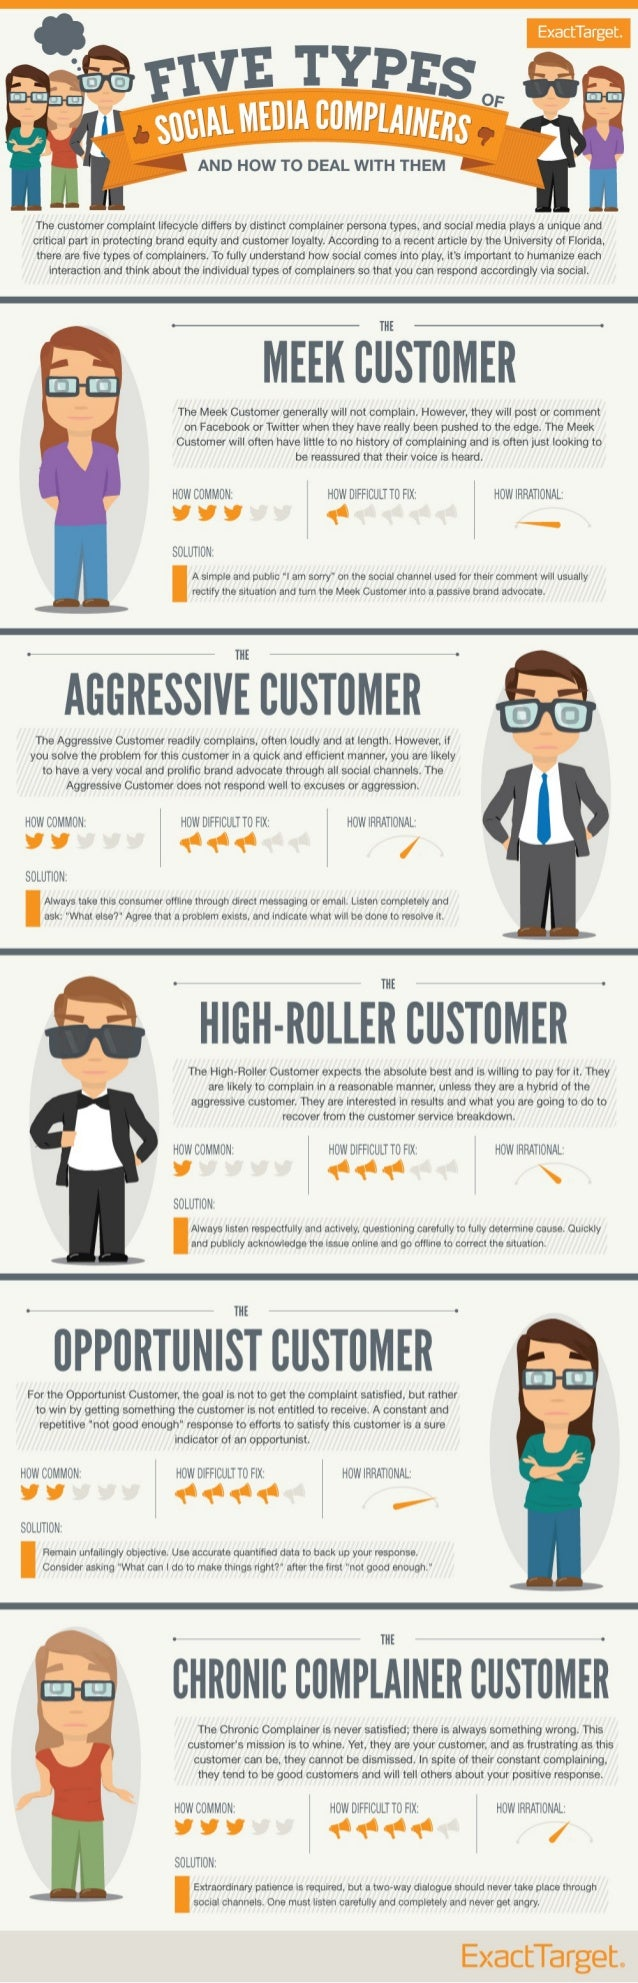 Collaborative IQ with Denise Holt - INFOGRAPHIC 5 Types of Social Media Complainers